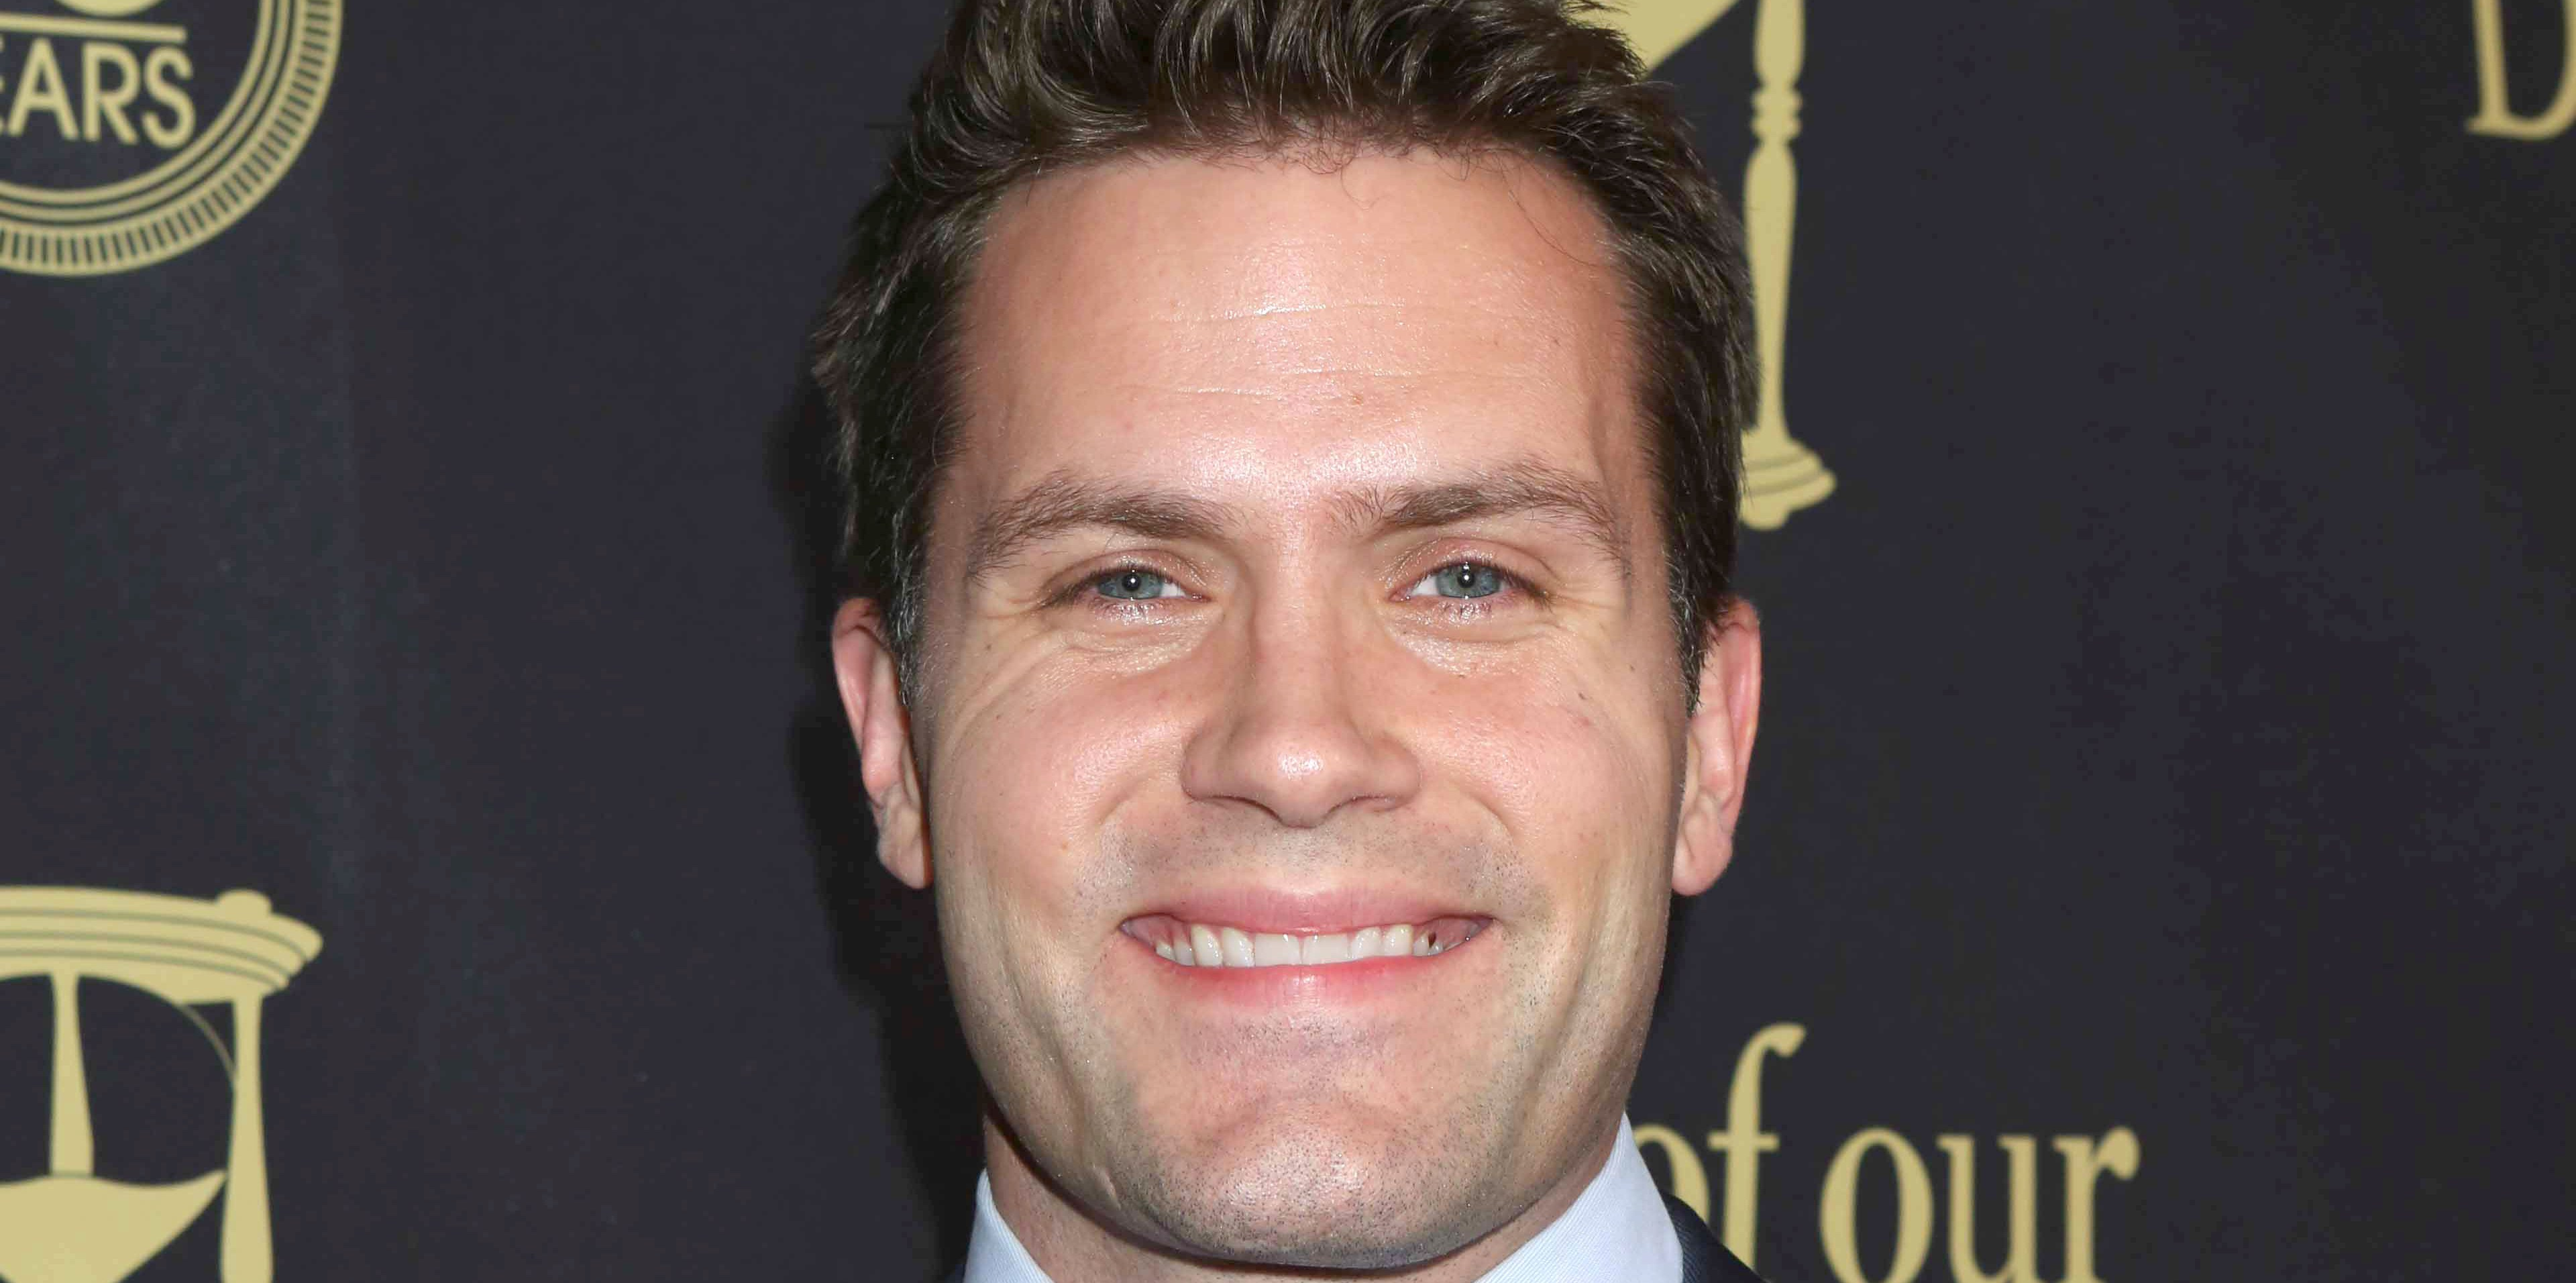 """Kyle Brandt DAYS OF OUR LIVES 50th Anniversary Sands Through the Hourglass """"Cruise"""" Celebration at the Hollywood Palladium in Los Angeles, CA on November 7, 2015 11/7/15  © Howard Wise/jpistudios.com 310-657-9661"""